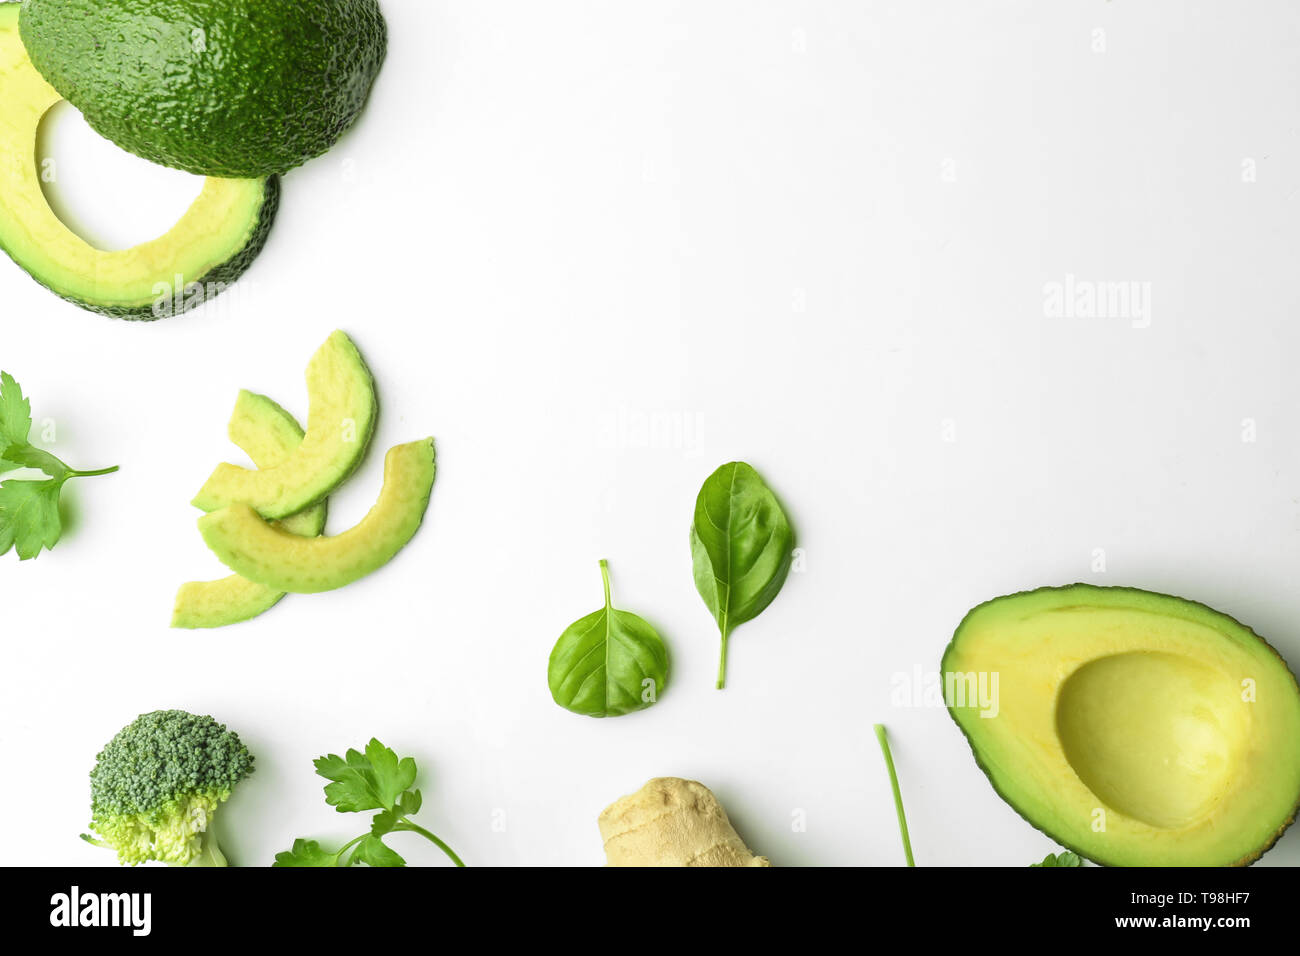 Composition with cut avocado on white background - Stock Image